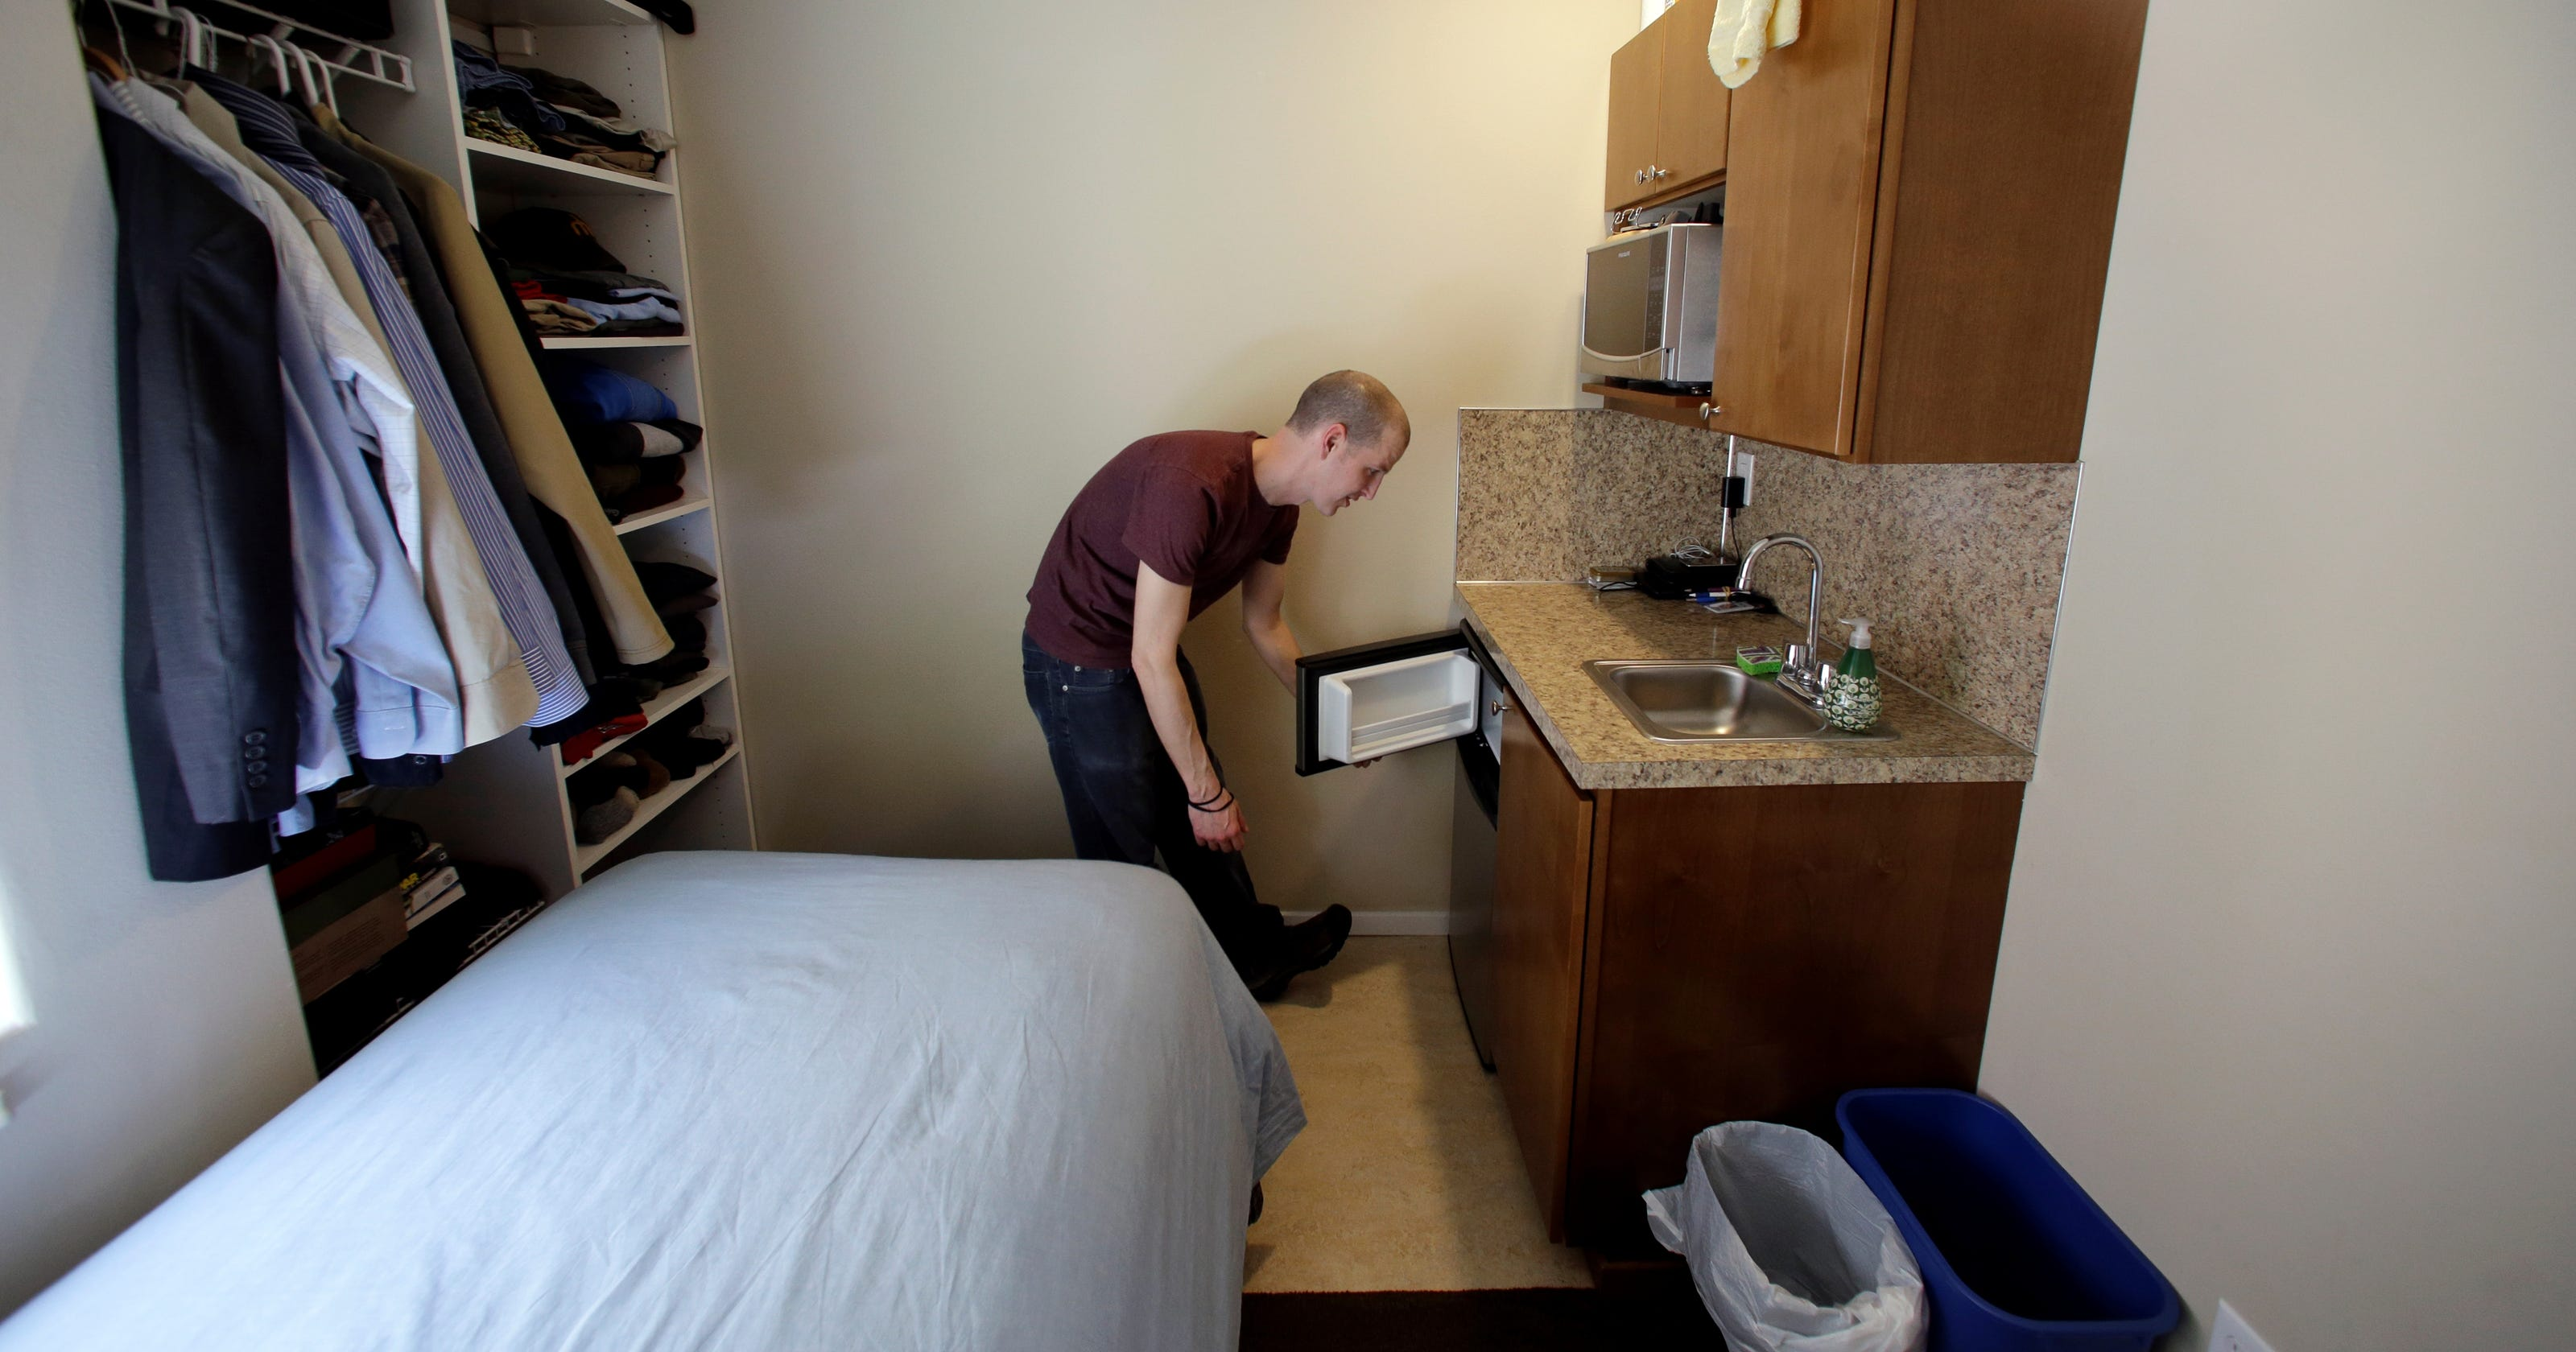 Rent Apartment Usa Ever Lived In A Place This Tiny Micro Apartments Face